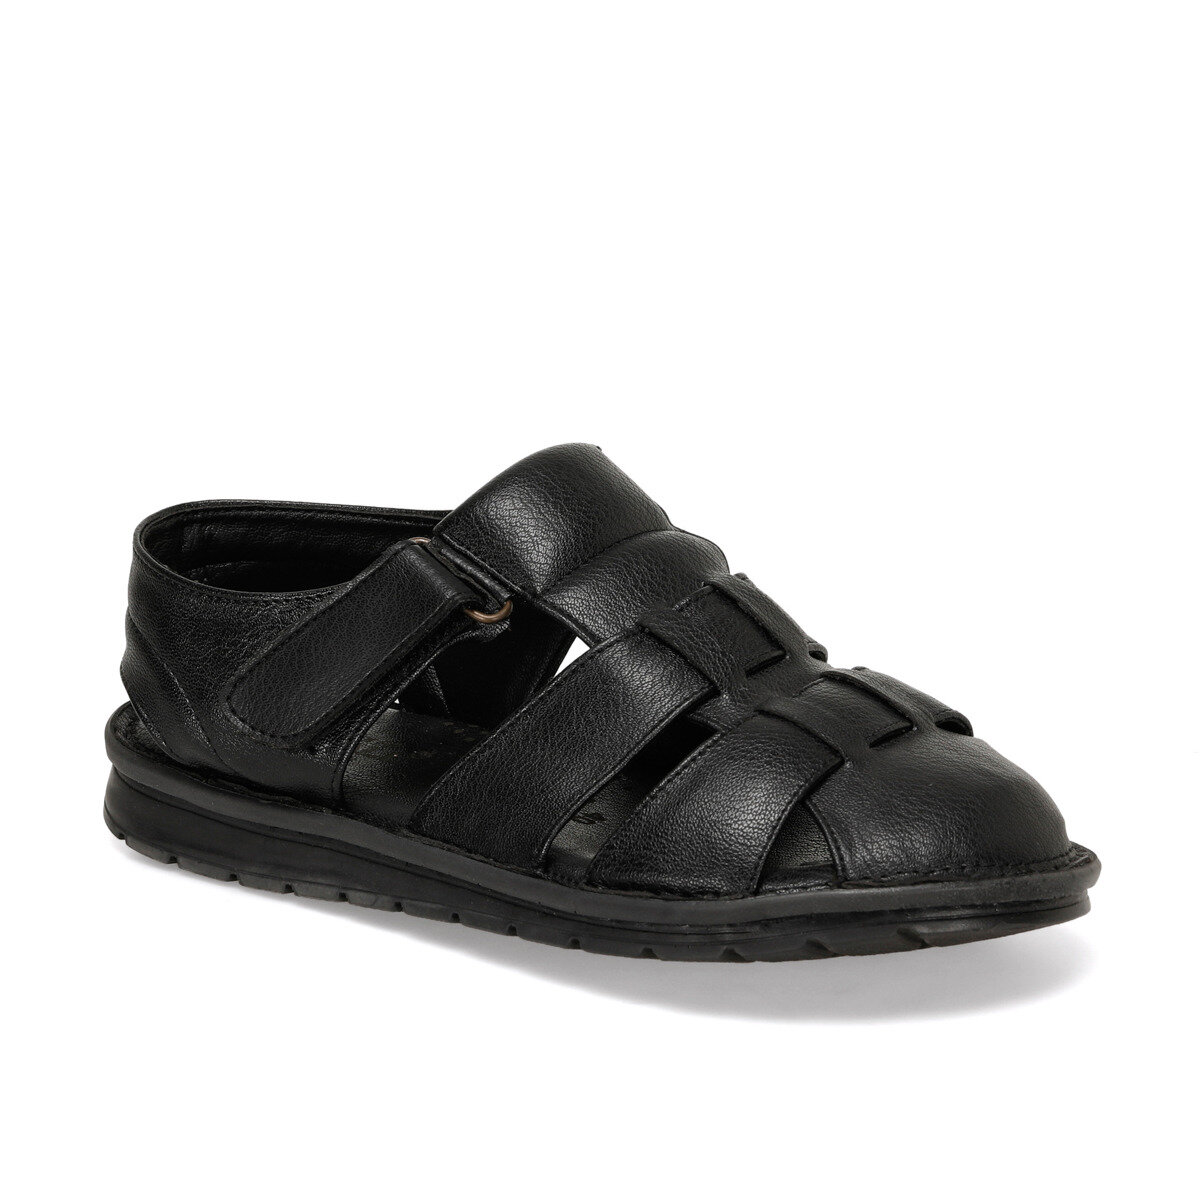 FLO 103 Black Men 'S Classic Shoes Flexall